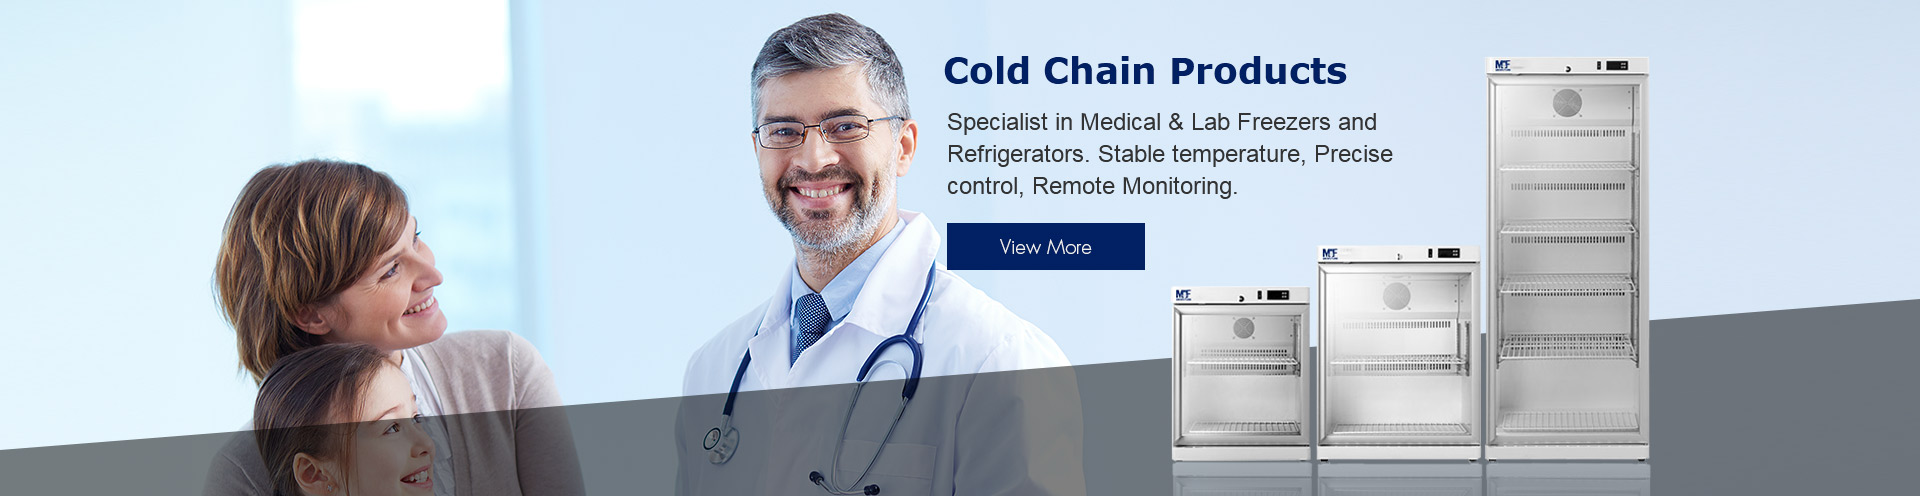 Cold Chain Products